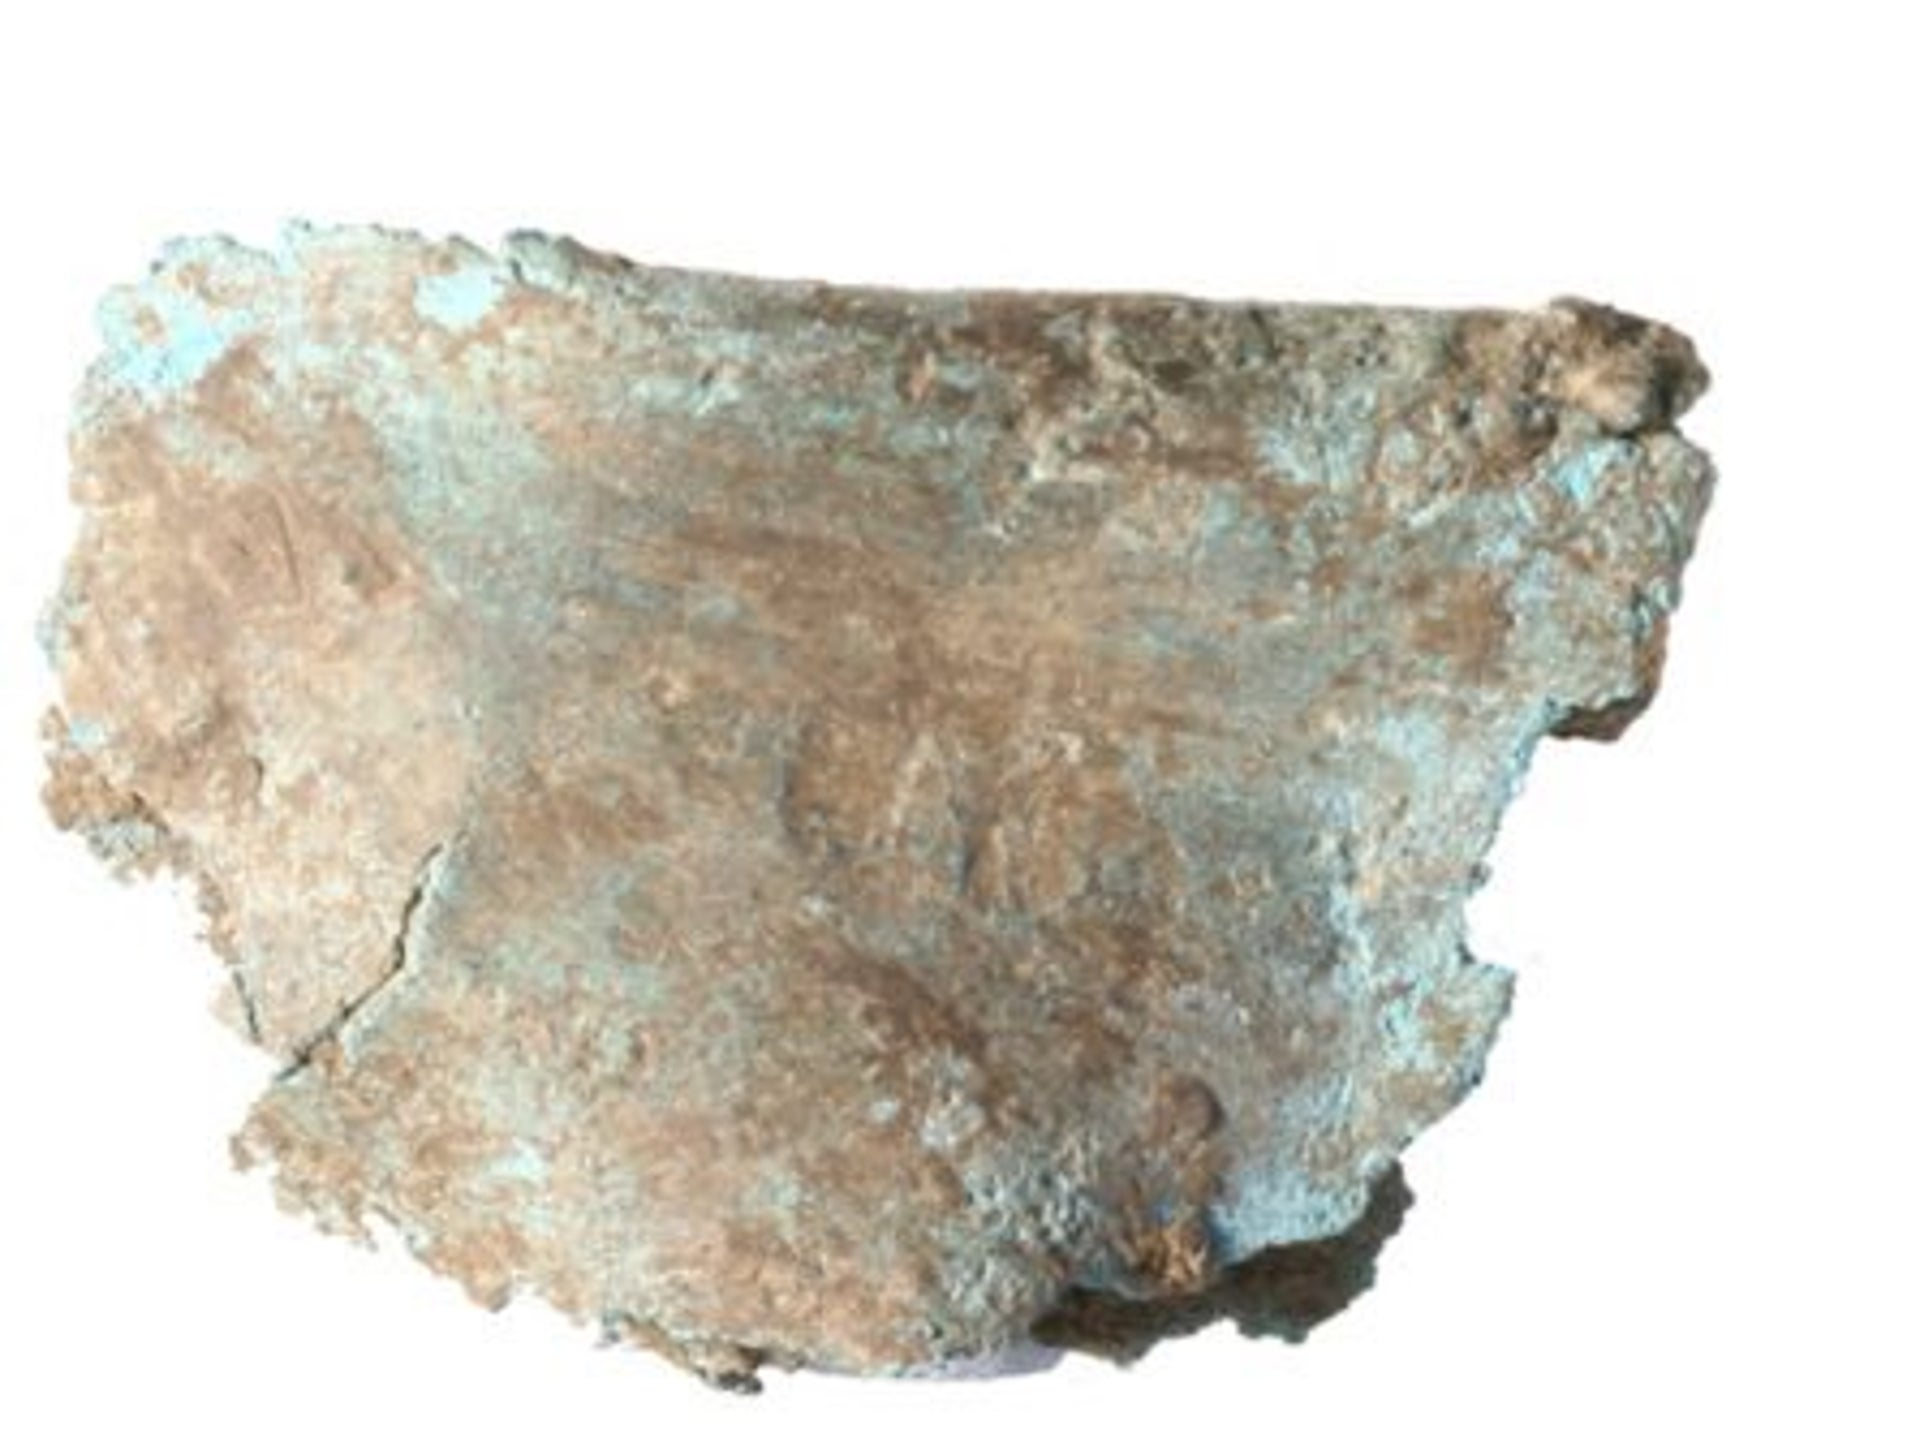 Tin-bronze foil, clearly smelted, found in an occupation layer dated to the mid-5th millennium B.C.E. in Pločnik, Serbia